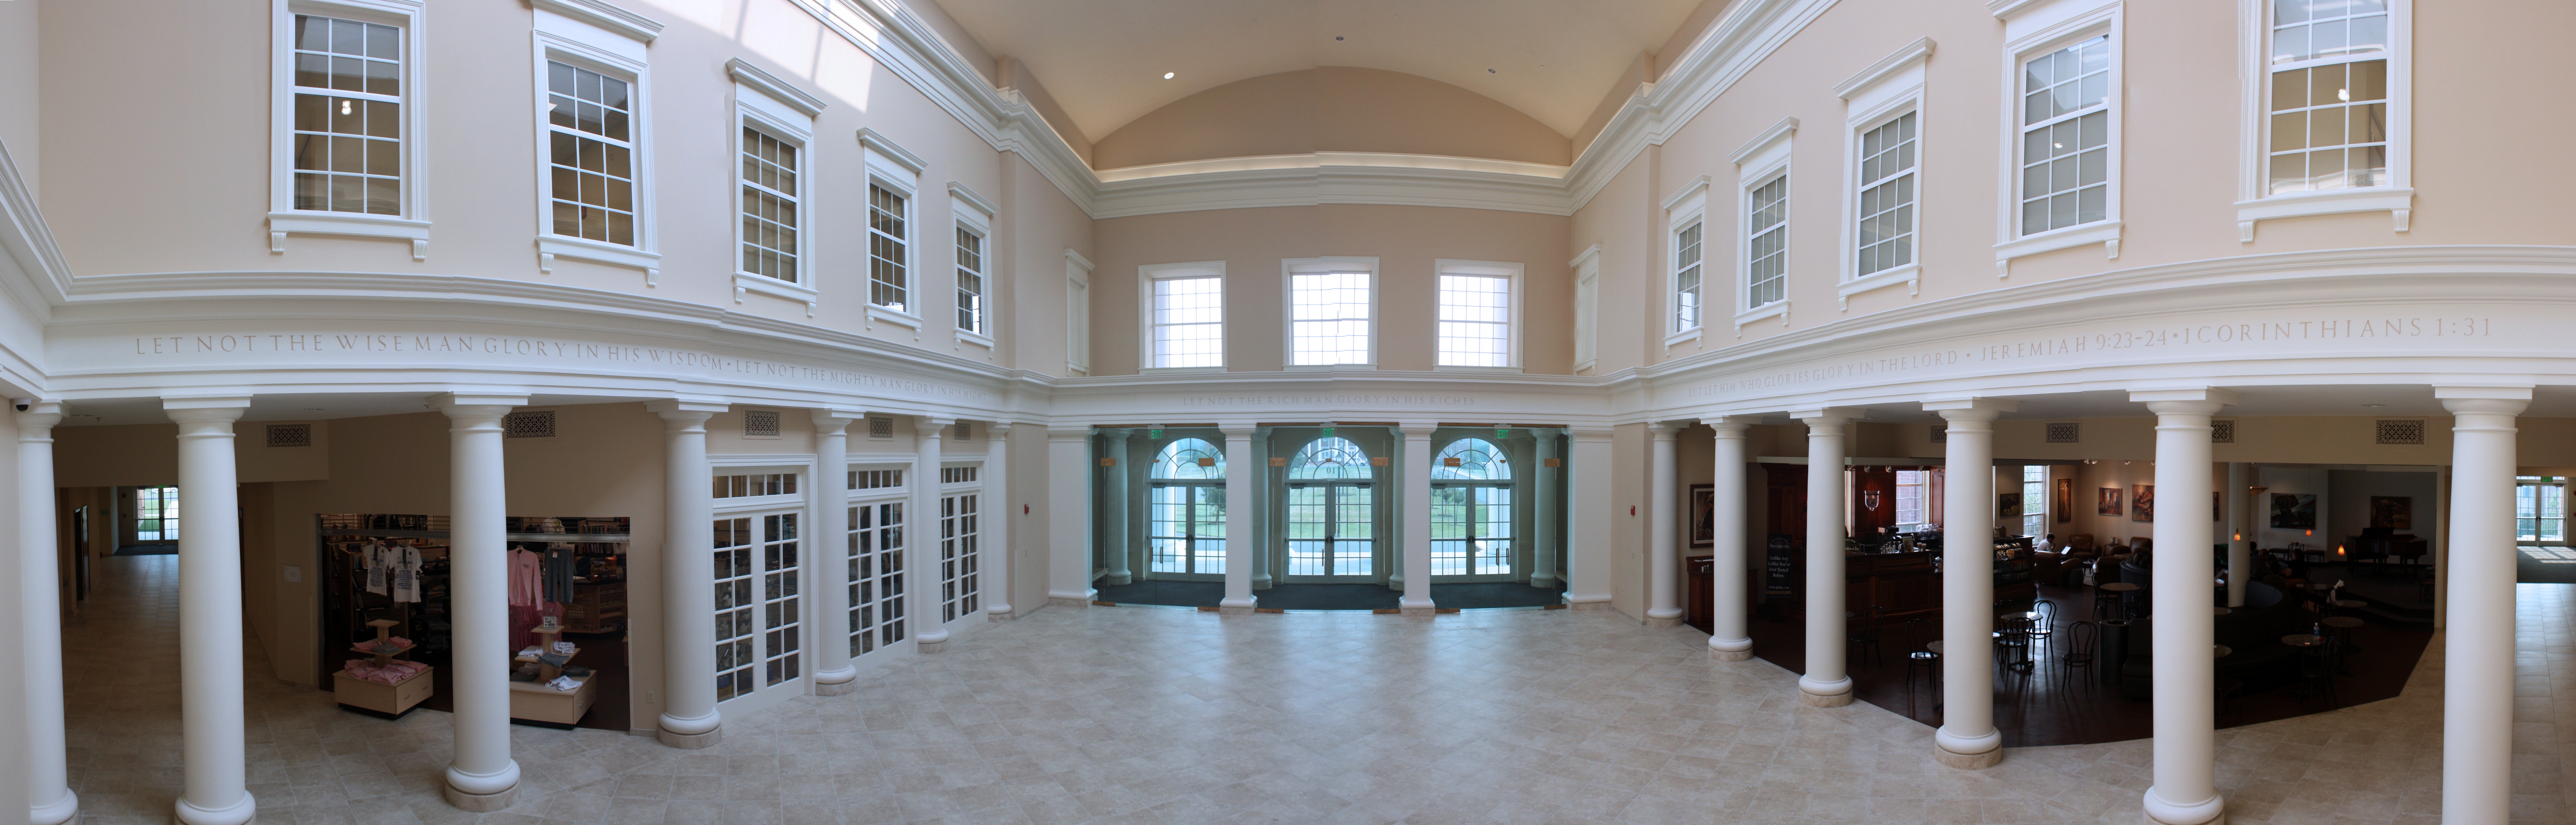 The_Grand_Foyer_looking_north.jpg